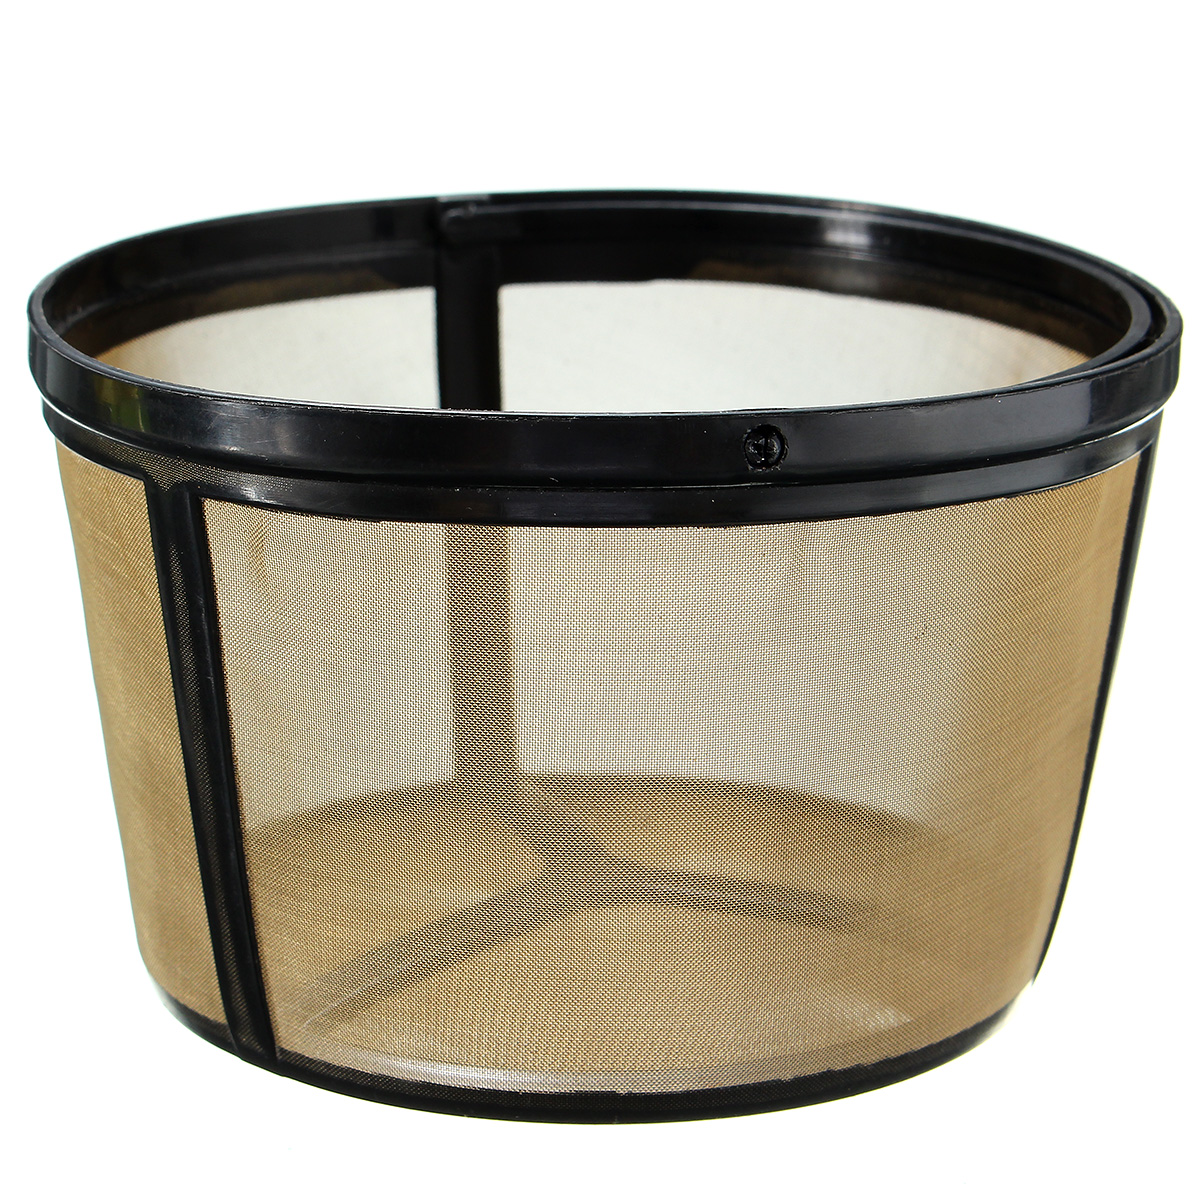 1PC Replacement Washable & Reusable Permanent Coffee Filter Basket For BUNN Coffee Makers by